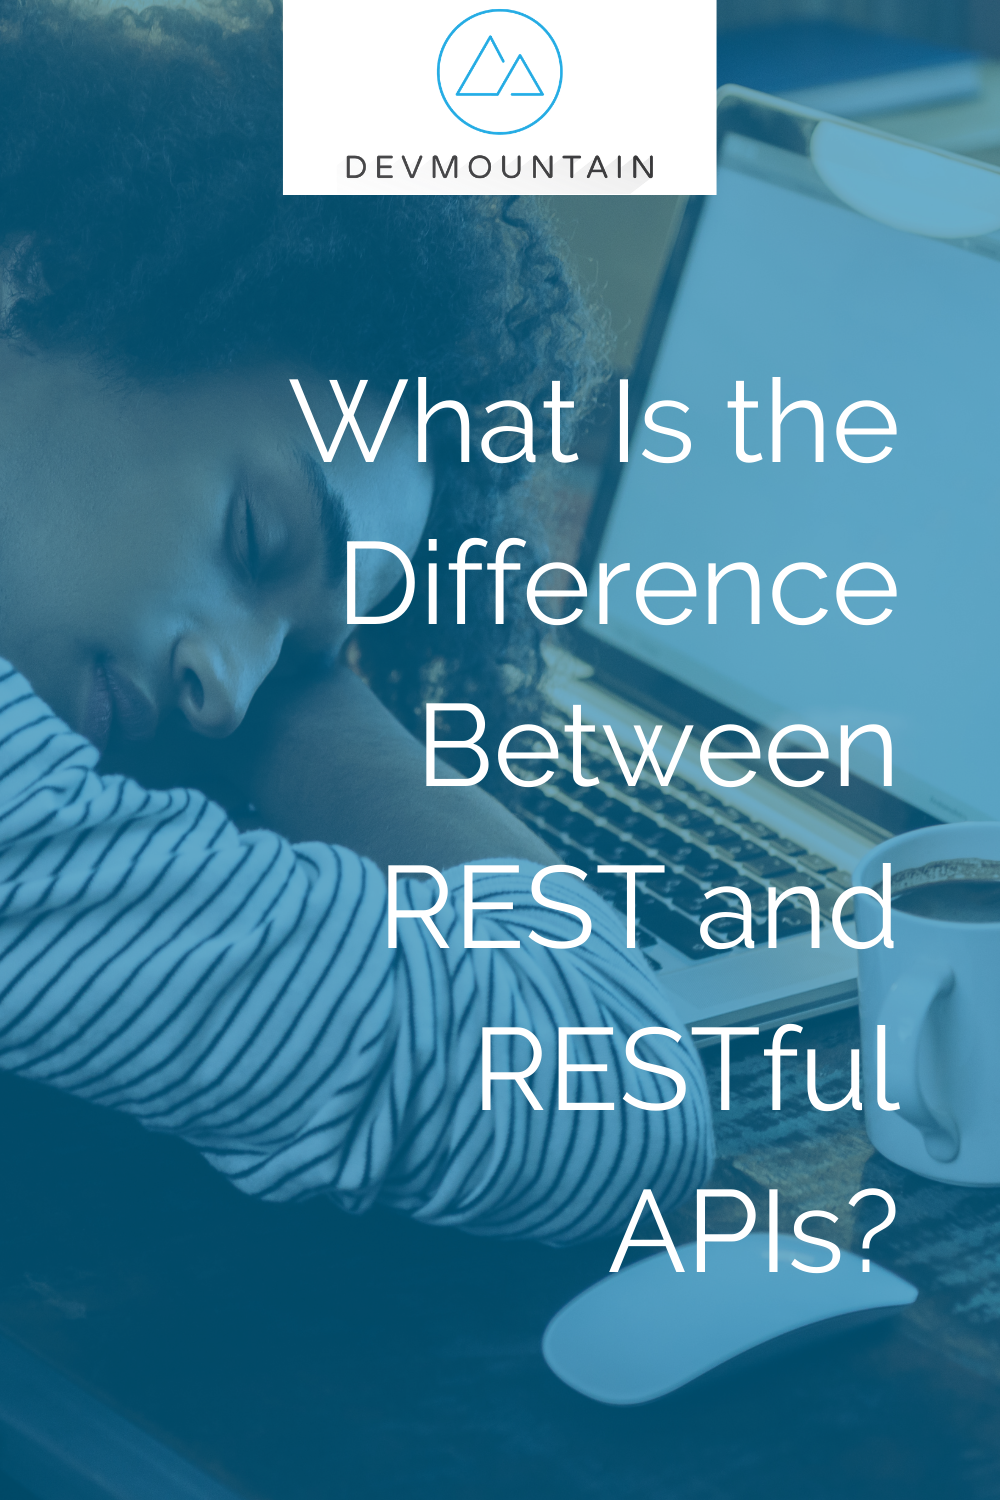 What Is the Difference Between REST and RESTful APIs?